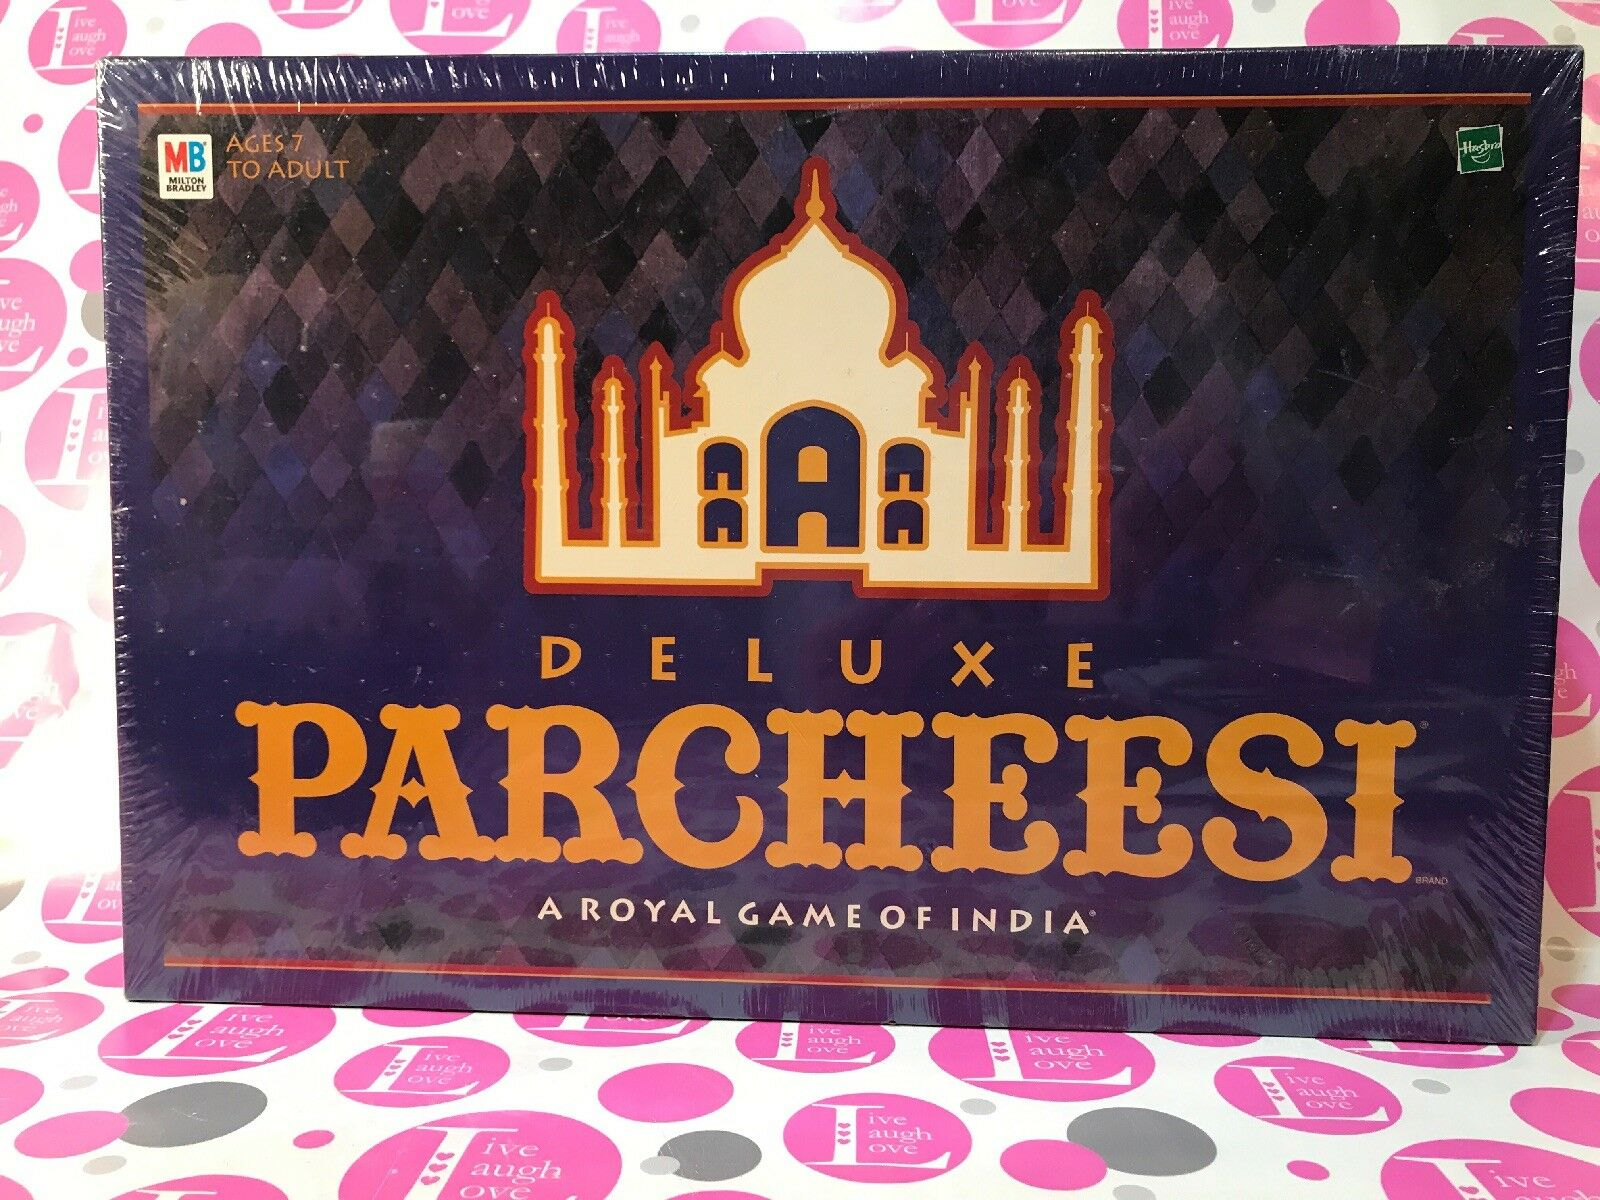 Deluxe Parcheesi Vtg NEW Board Game Royal India Wooden Pawns SEALED 1999 MB 90s